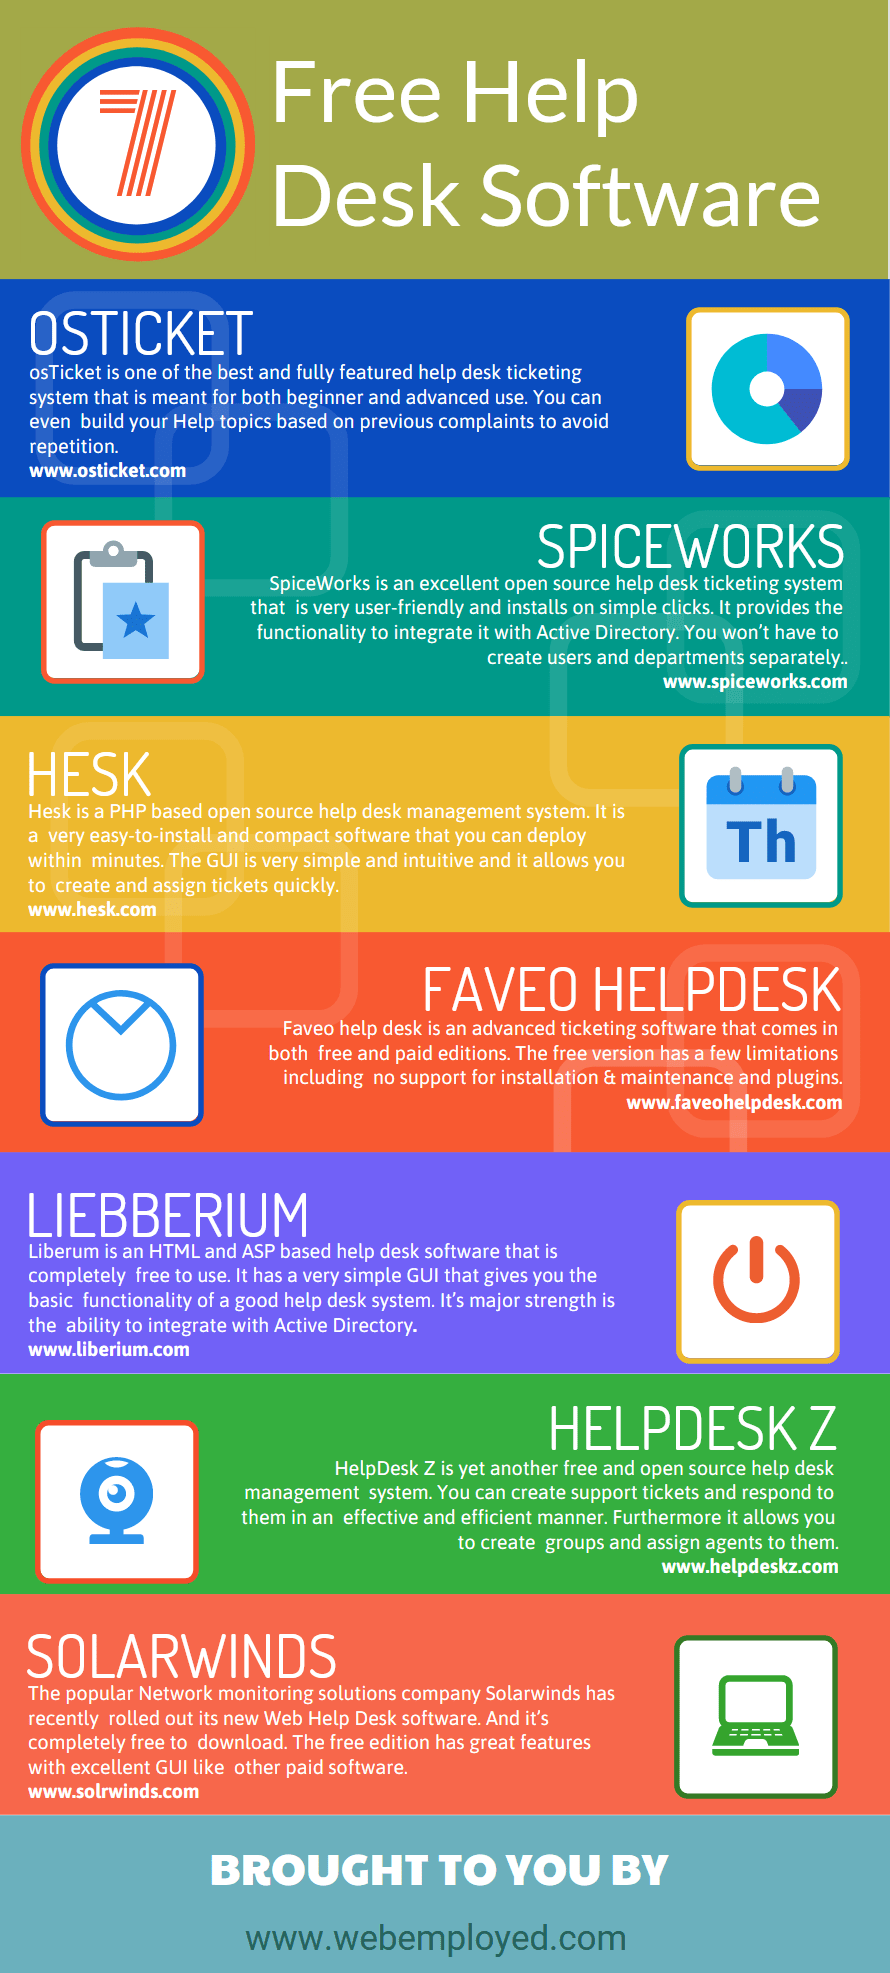 6 Free Help Desk Software For Automating It Support Help Desk Help Supportive